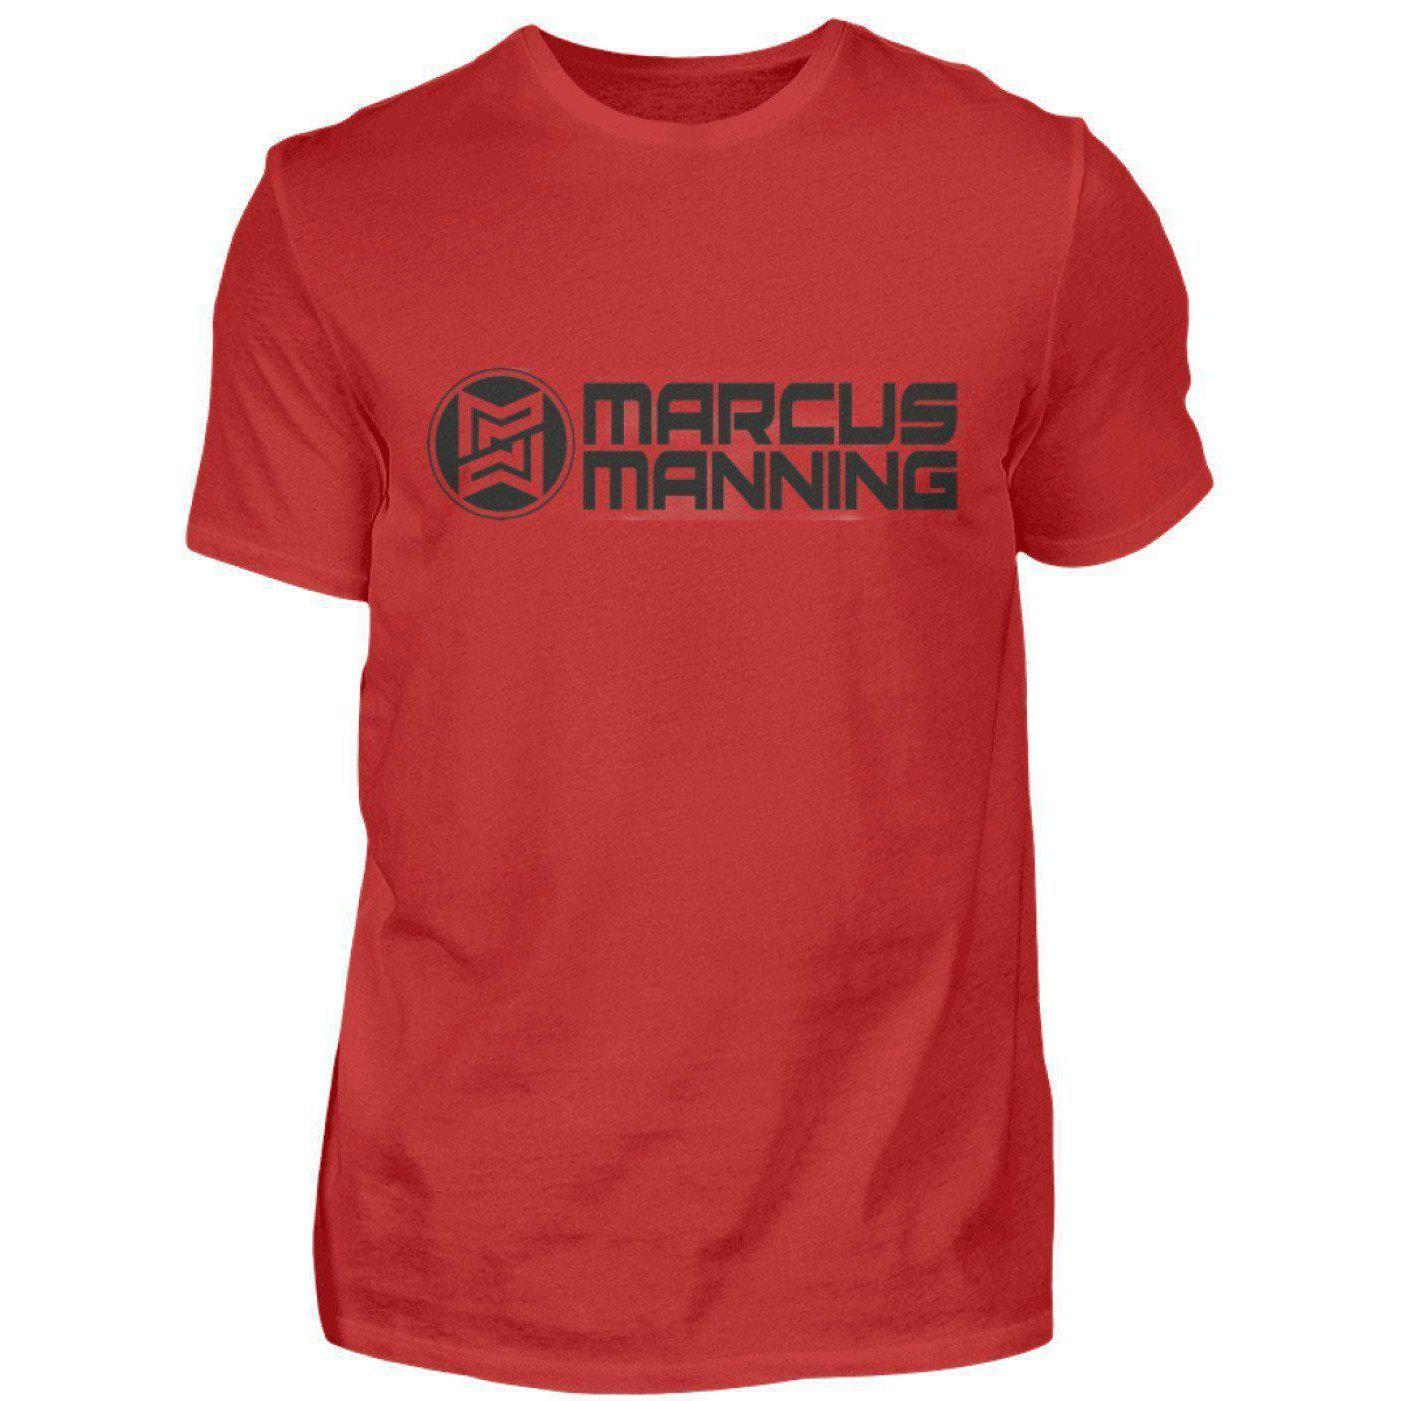 Marcus Manning Light Collection - Men's Shirt Men's Basic T-Shirt Red / S - Rave On!® the club & techno scene shop for cool young fashion streetwear style & fashion outfits + sexy festival 420 stuff